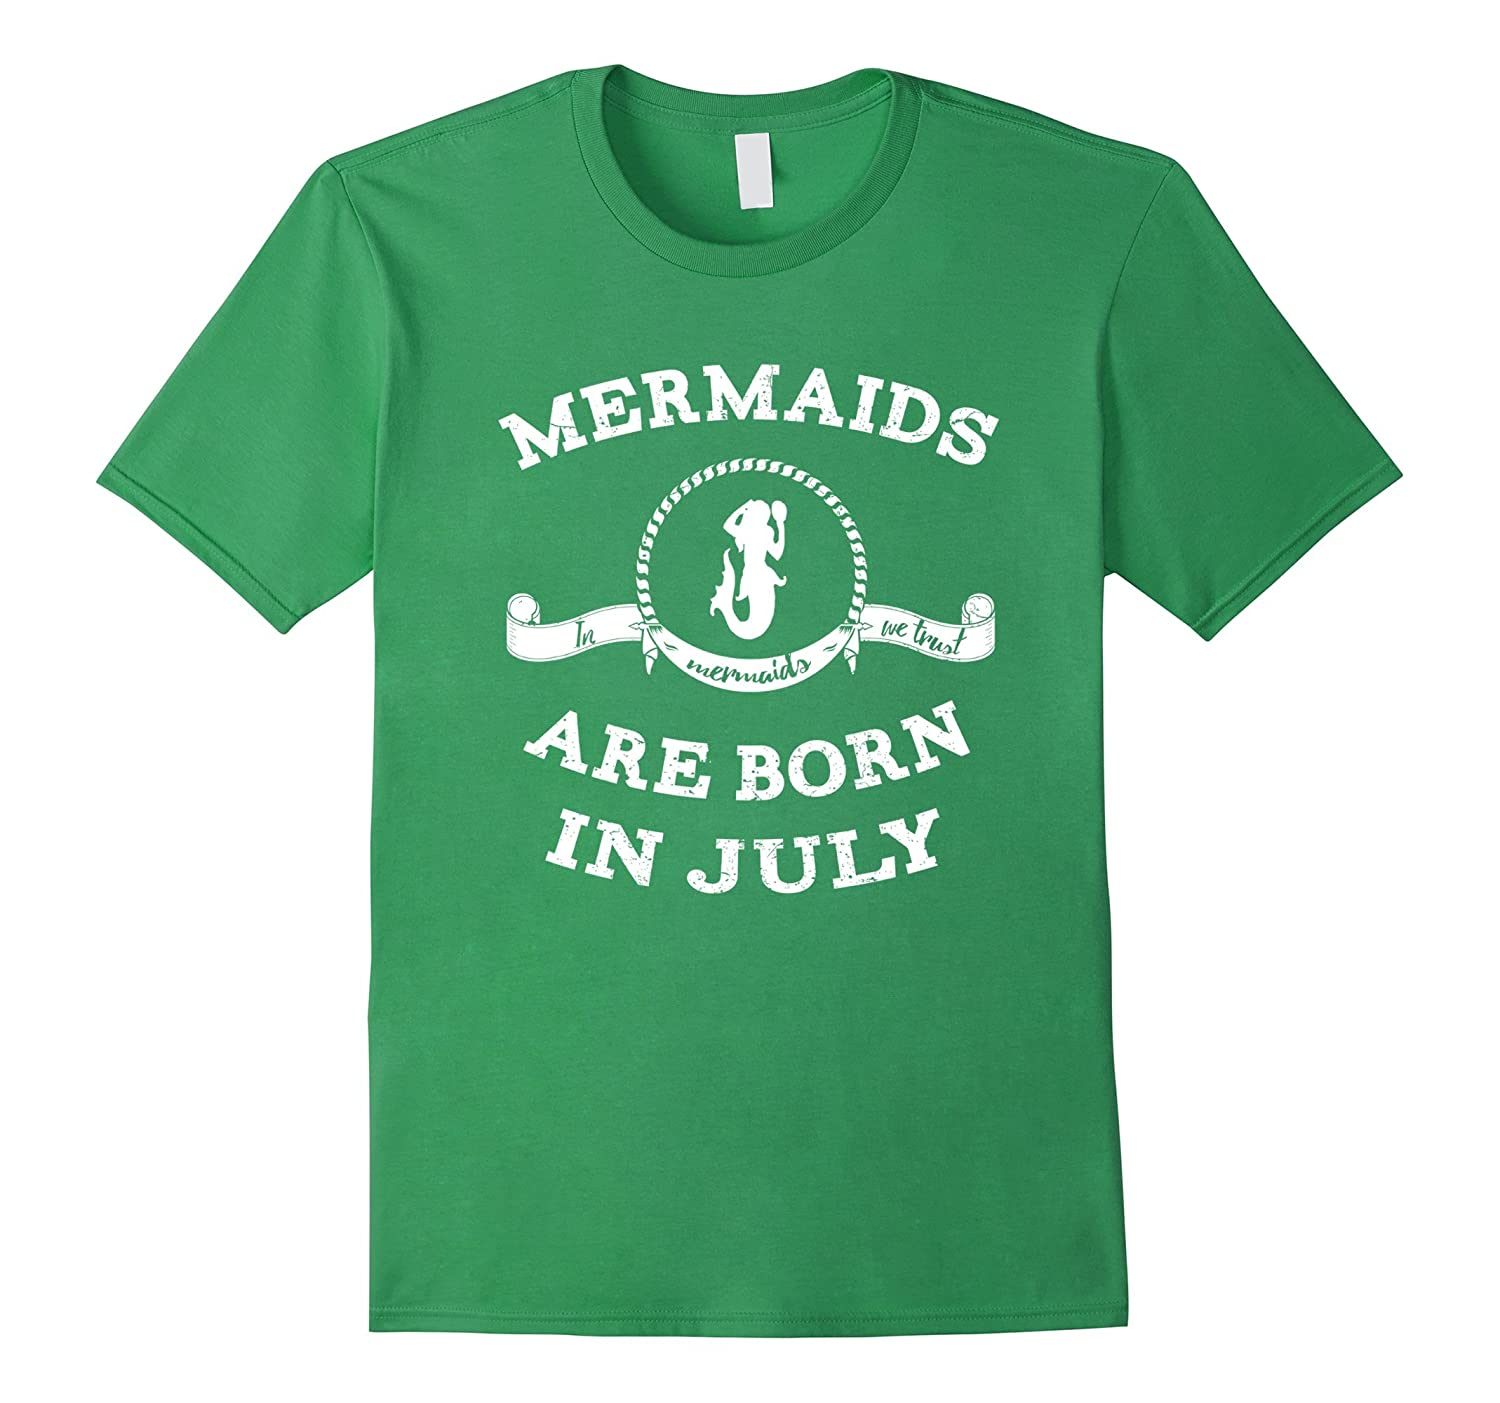 Mermaids Are Born In July T-Shirt For Daughter Women Funny